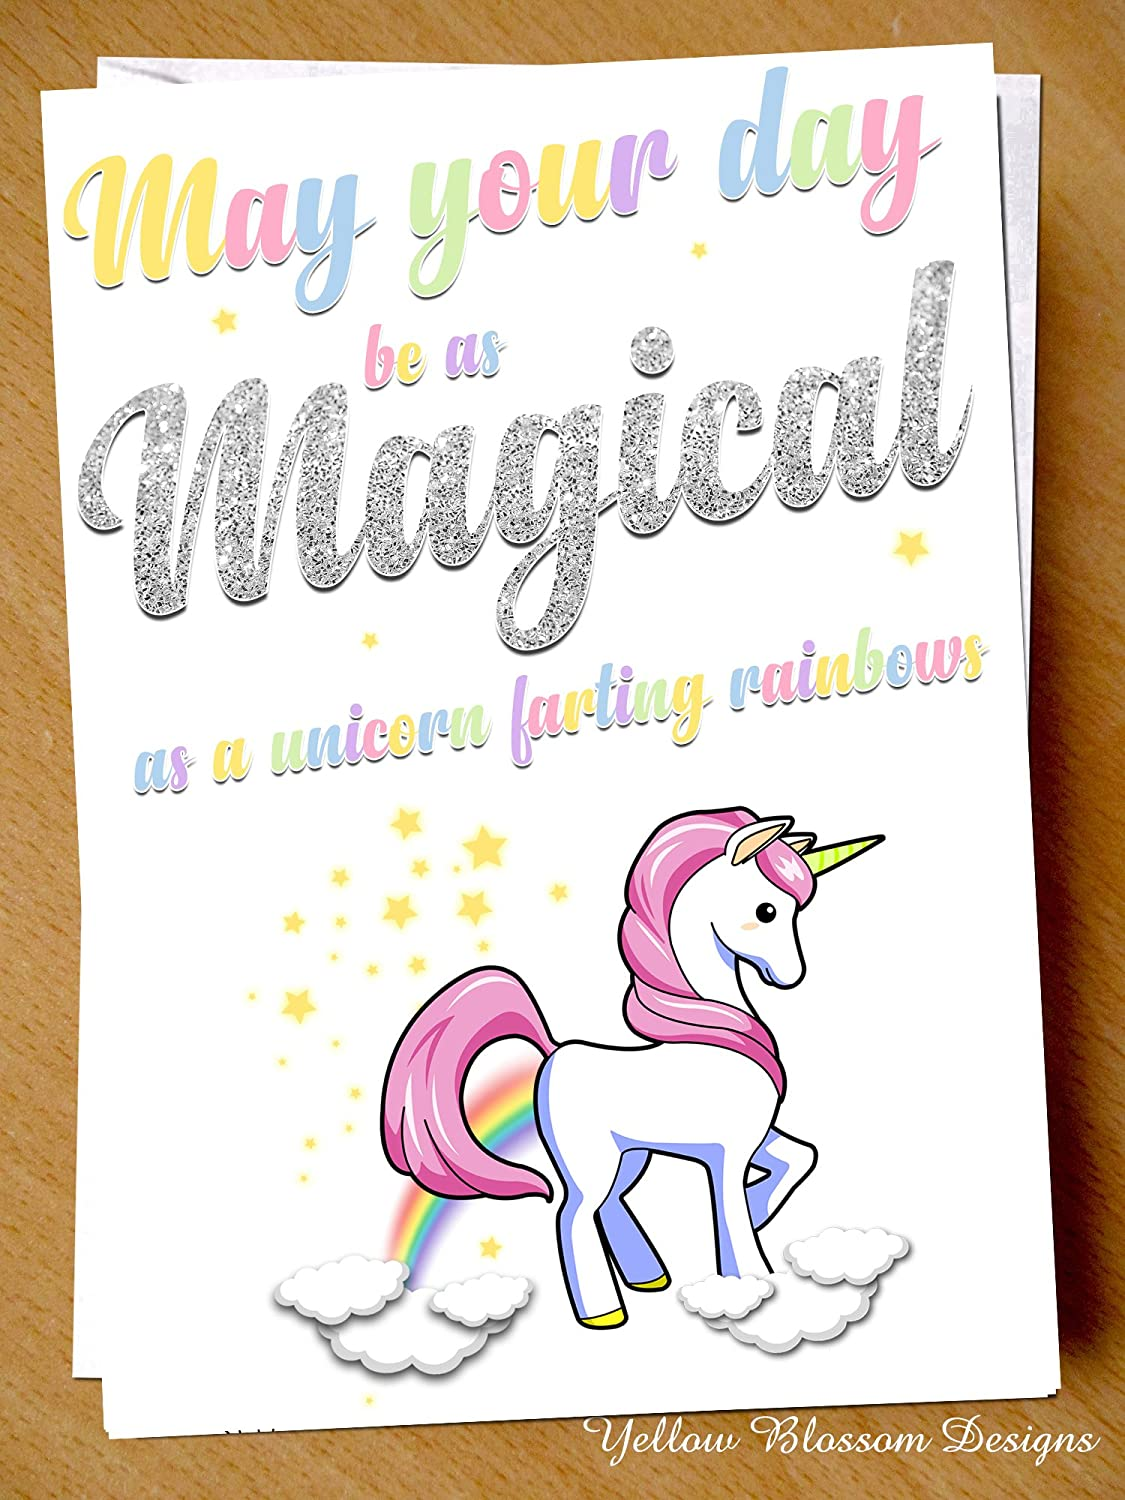 Comical Funny Birthday Card May Your Day Be As Magical A Unicorn Farting Rainbows Sister Mum Auntie Best Friend BFF Cute Witty Adult Hilarious Blunt